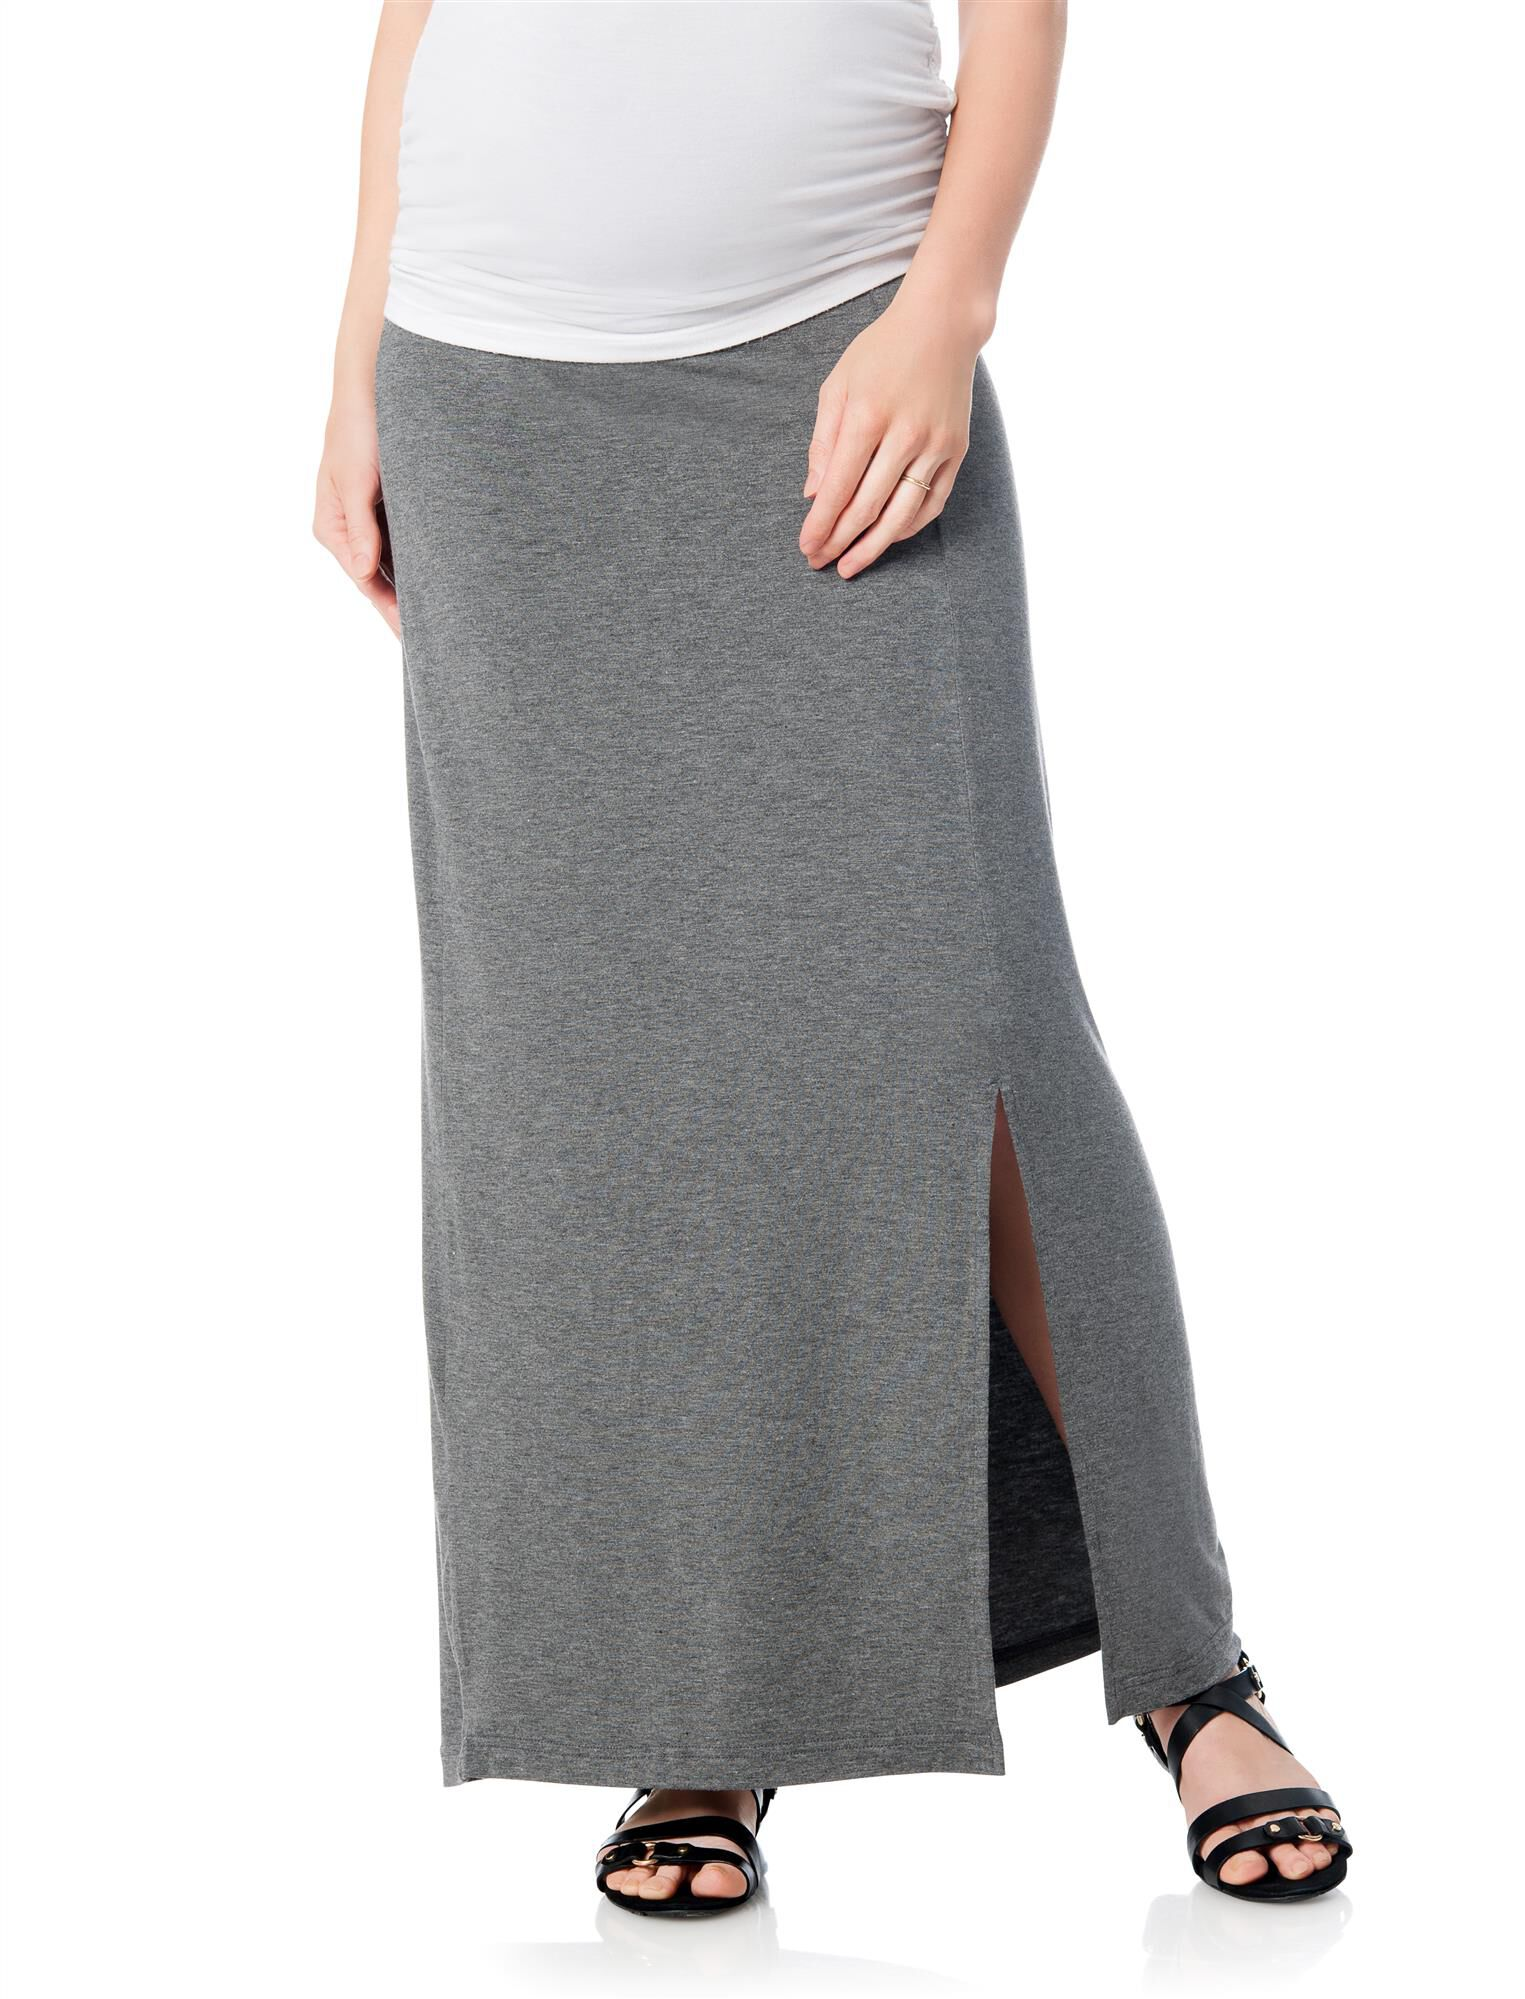 Self Belly Maternity Skirt